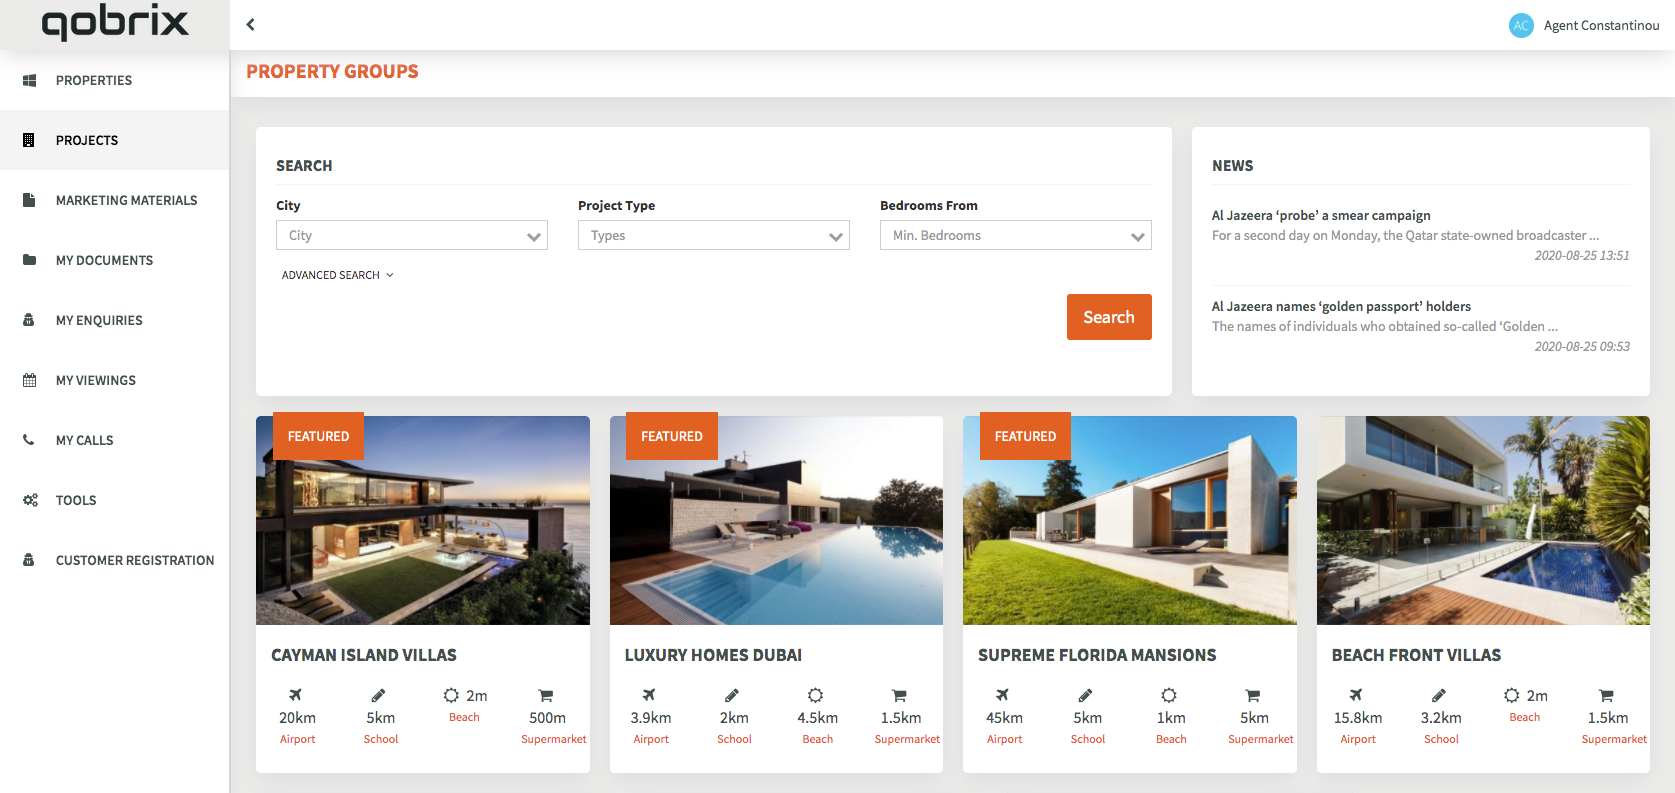 Qobrix's Real Estate Agent Portal Dashboard showing featured properties and advanced search functionalities